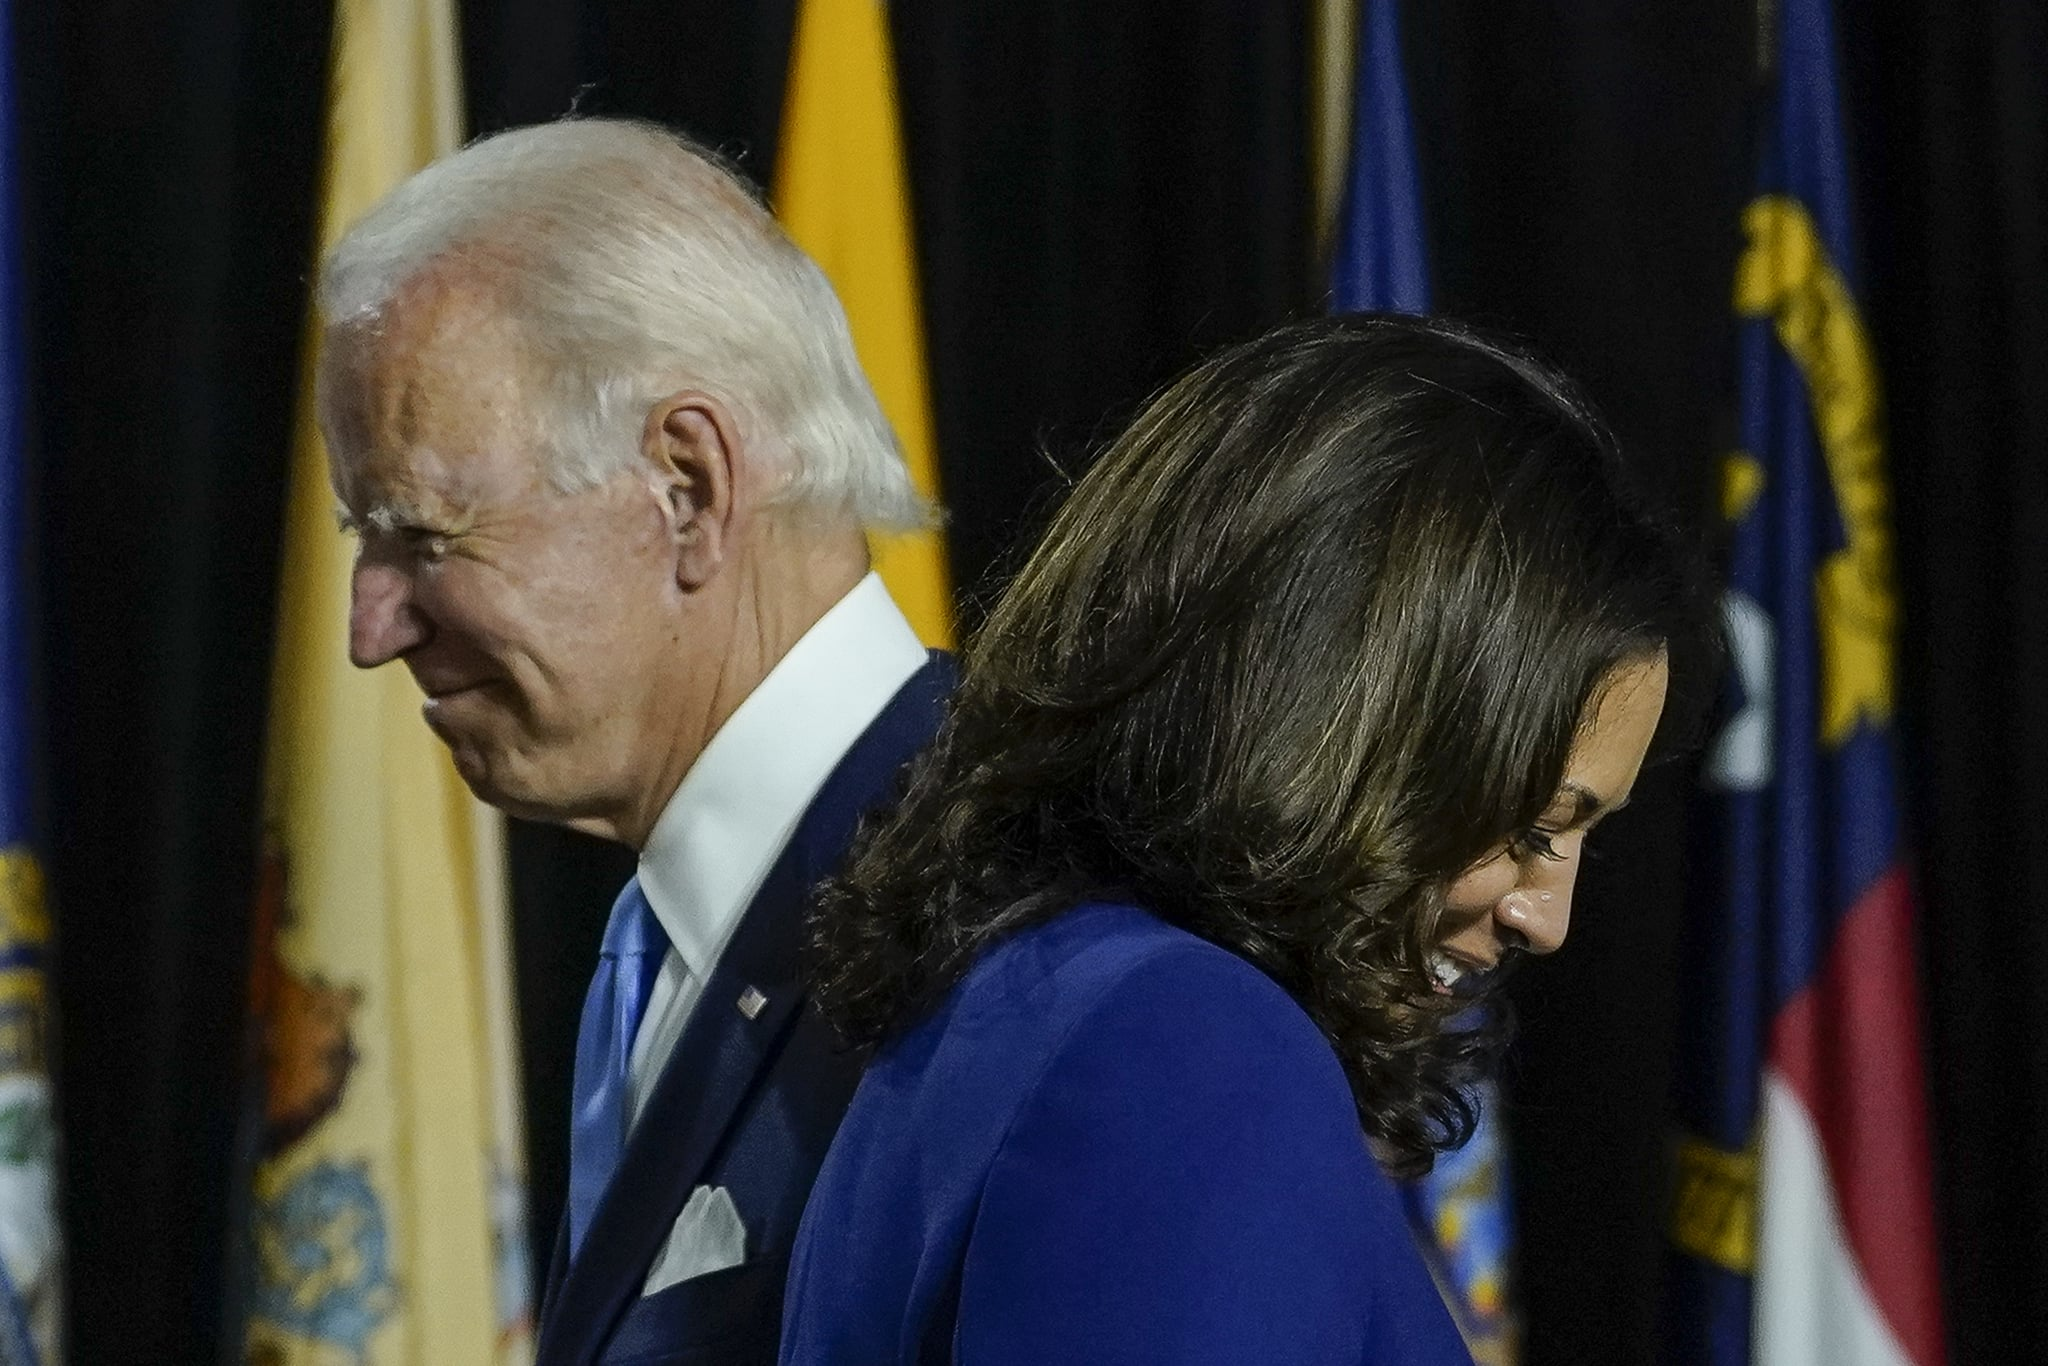 WILMINGTON, DE - AUGUST 12: Presumptive Democratic presidential nominee former Vice President Joe Biden invites his running mate Sen. Kamala Harris (D-CA) to the stage to deliver remarks at the Alexis Dupont High School on August 12, 2020 in Wilmington, Delaware. Harris is the first Black woman and first person of Indian descent to be a presumptive nominee on a presidential ticket by a major party in U.S. history. (Photo by Drew Angerer/Getty Images)